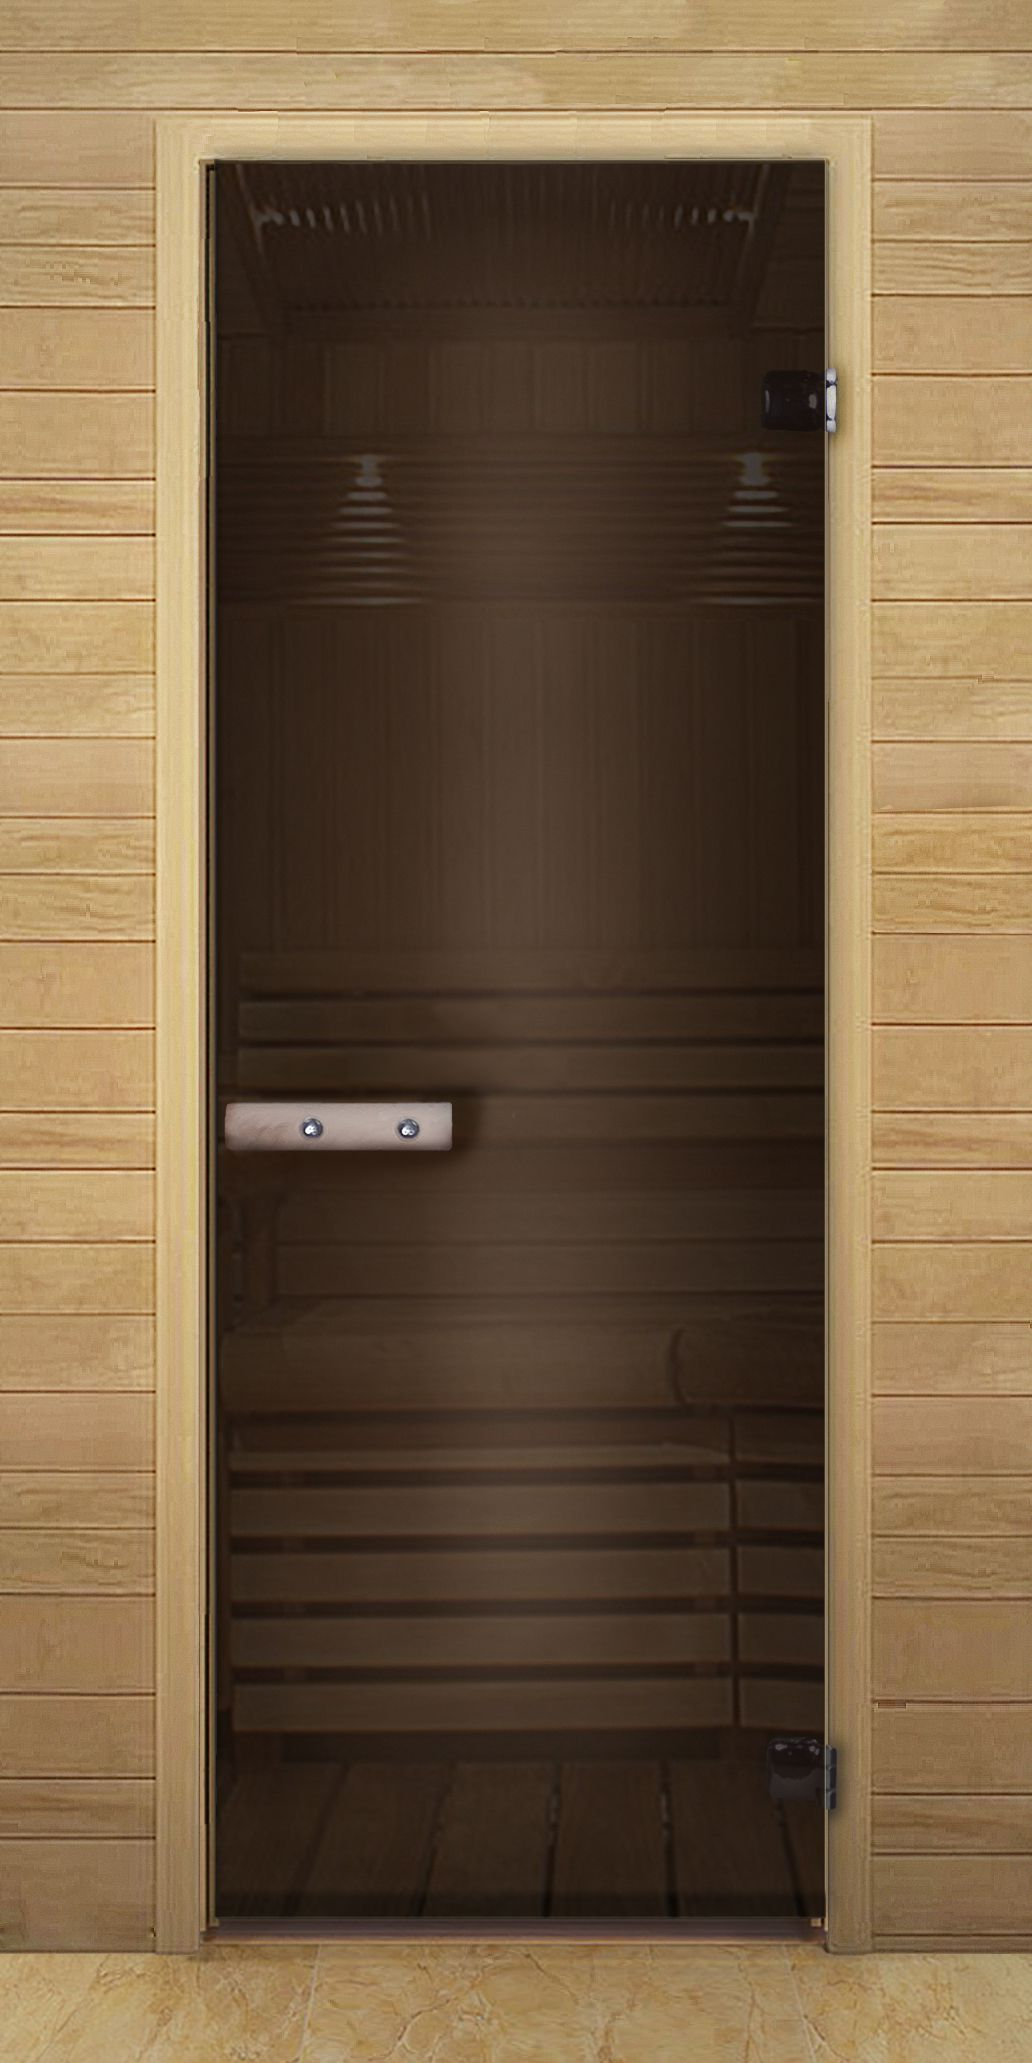 Brown Single-swing door to the sauna